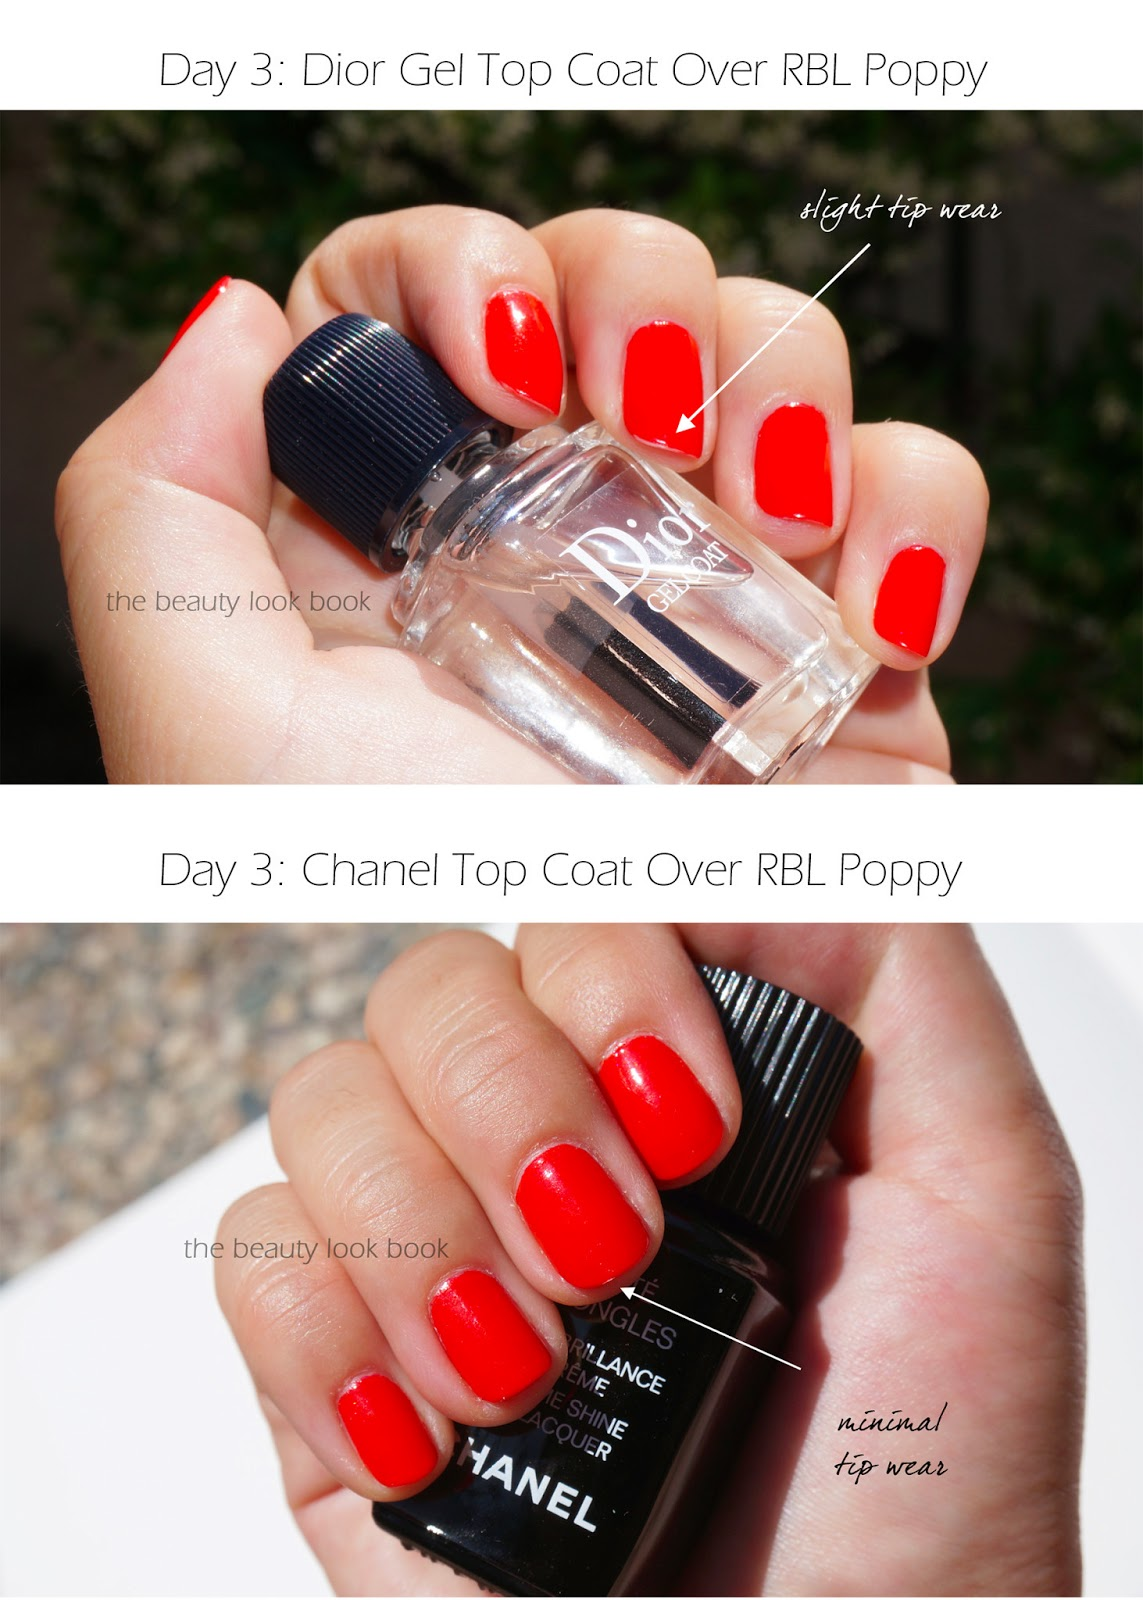 Top Coats Dior Gel Top Coat Vs Chanel Laque Brilliance Extreme The Beauty Look Book